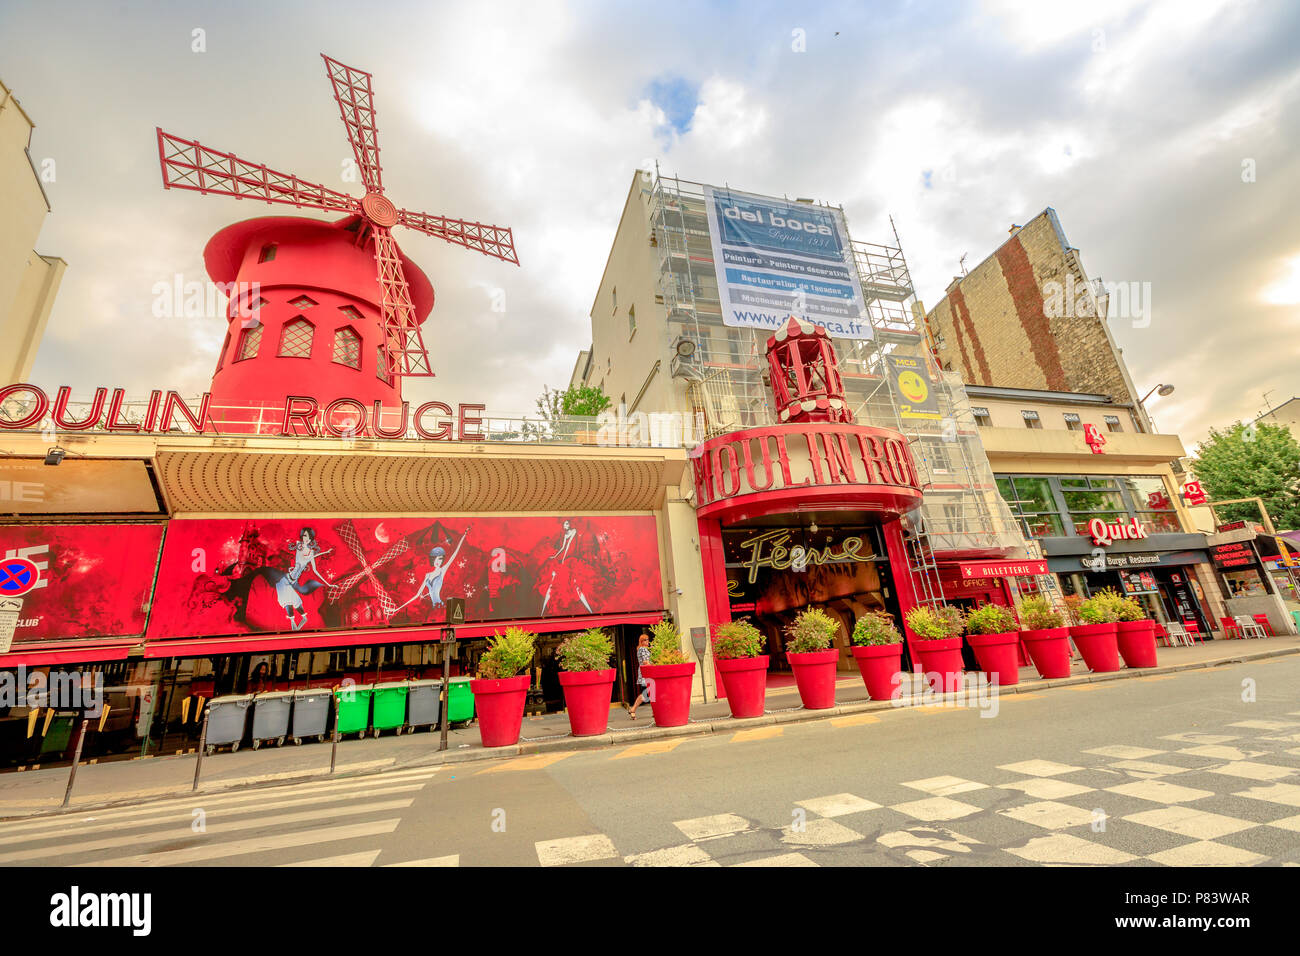 Paris, France - July 1, 2017: Boulevard de la Clichy and nightclub Moulin Rouge in Pigalle red lights district. Most popular historical theater and cabaret attraction of Paris.Tourism in Paris Capital - Stock Image